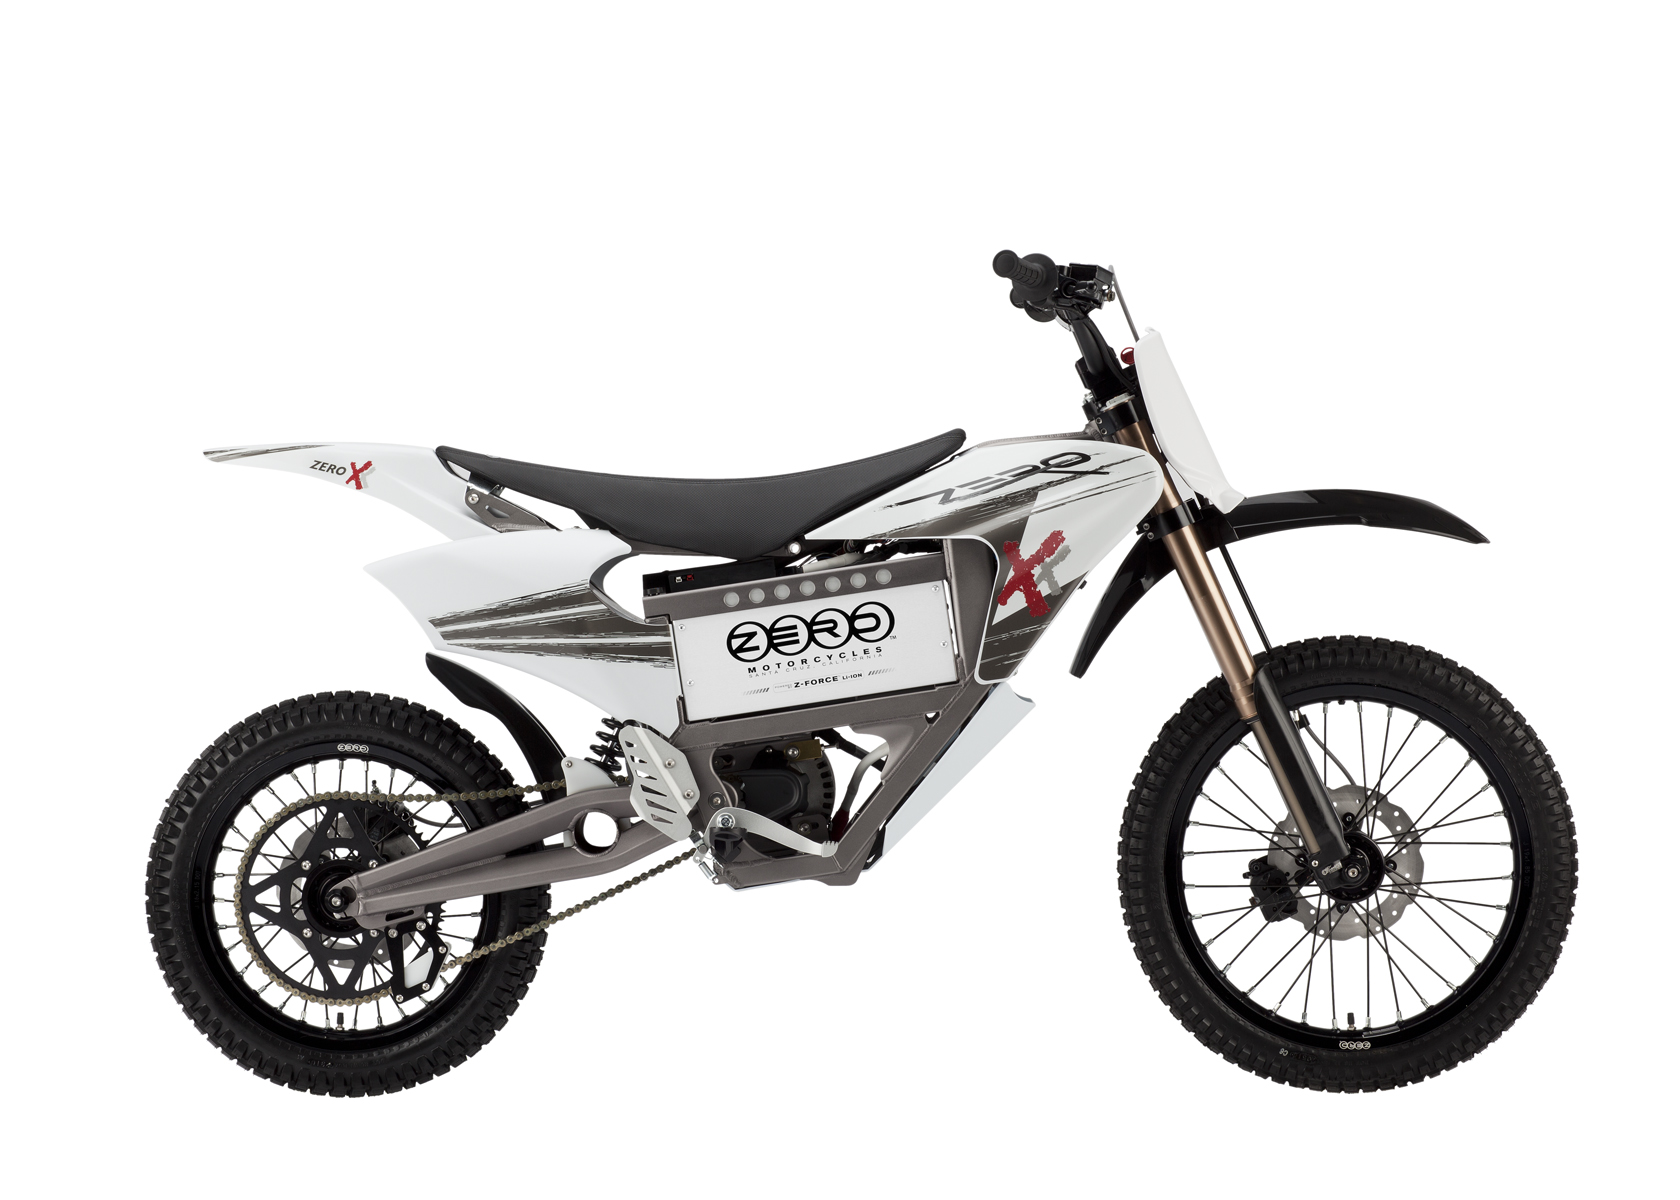 2011 Zero X Electric Motorcycle: Profile Right, Dirt Model, White Background